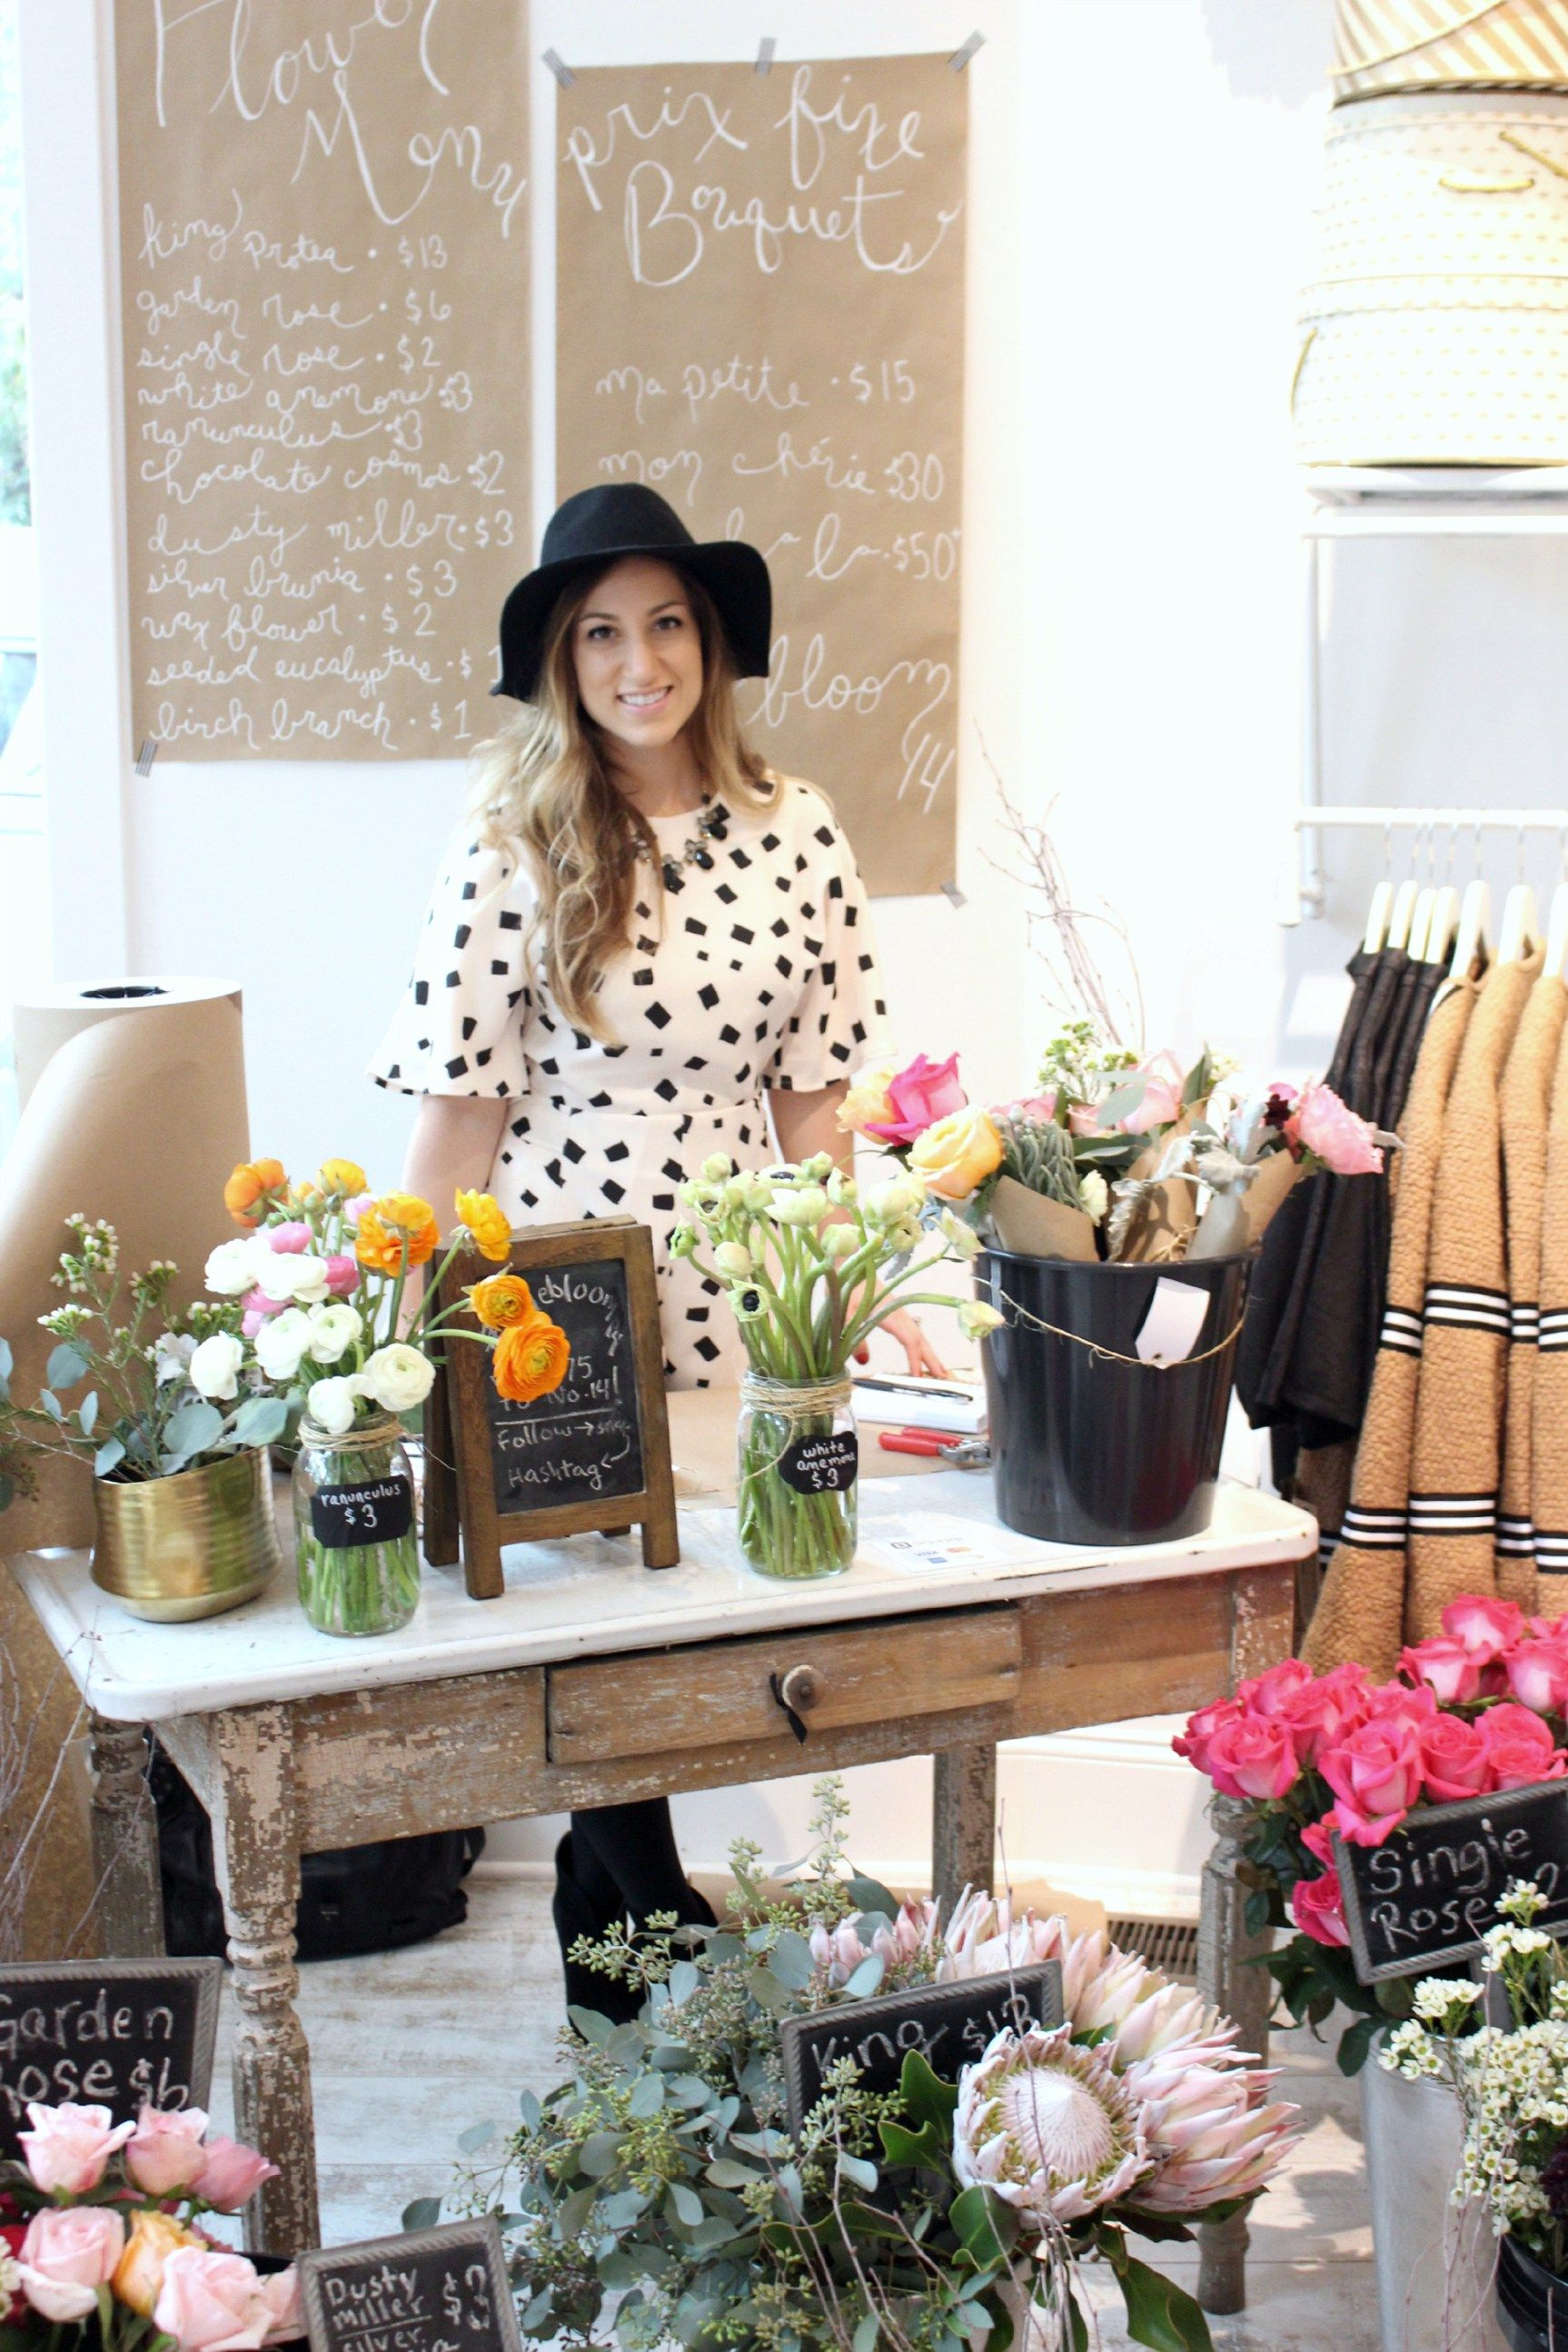 Pop Up Flower Shop Zoe With Love Flower Shop Design Flower Shop Interiors Flower Shop Display